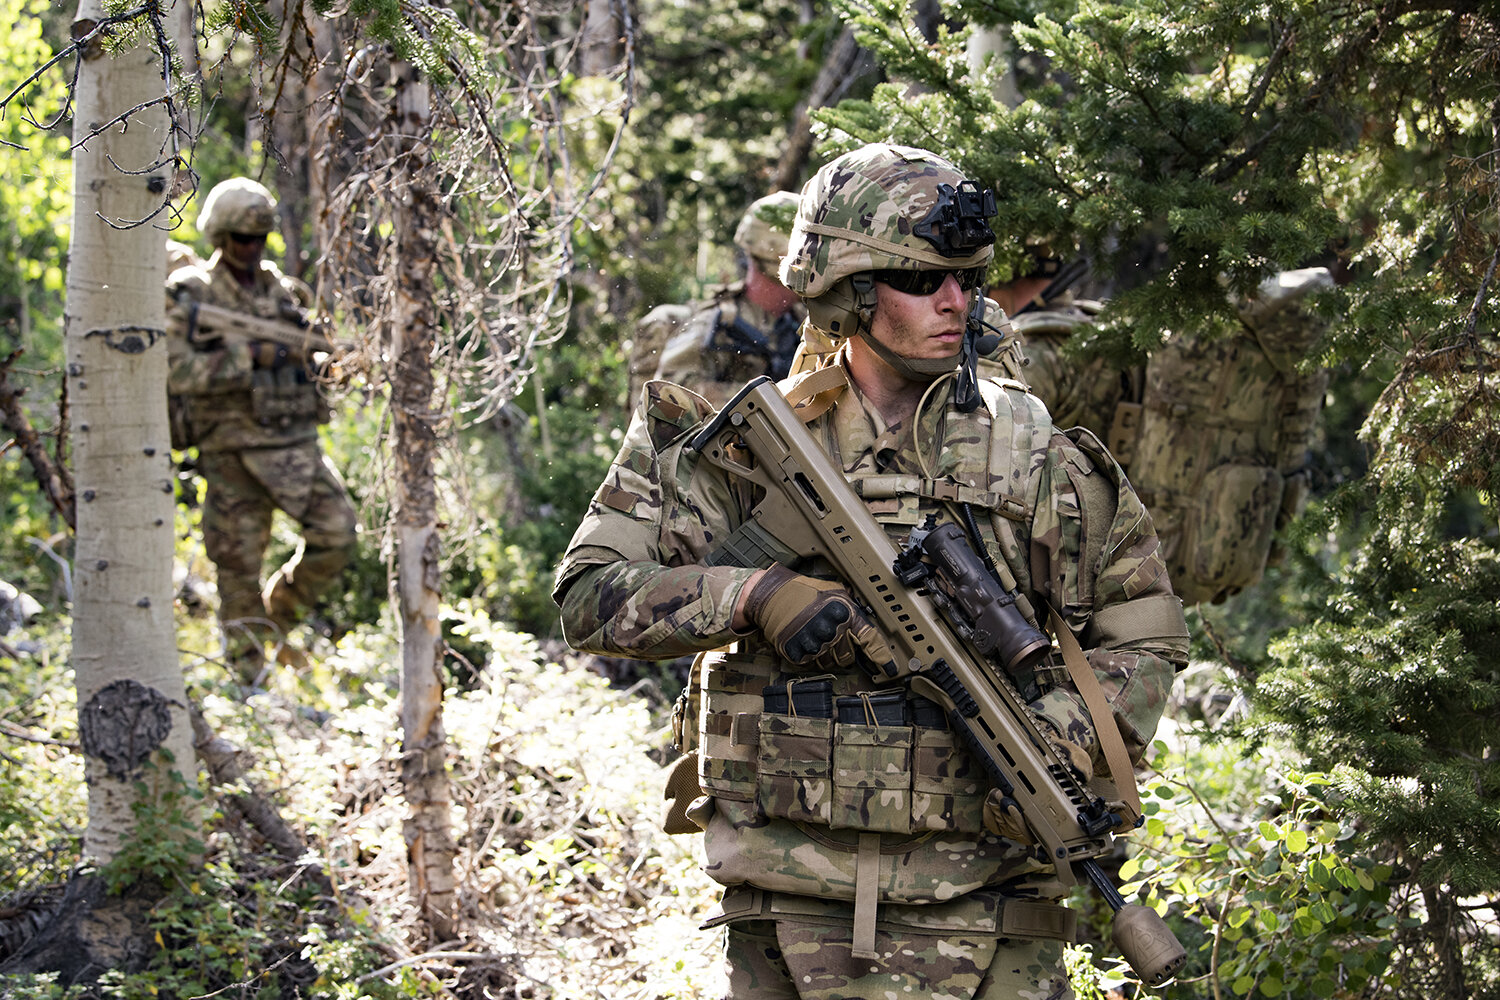 U.S. Army's Next Generation Squad Weapon (NGSW)